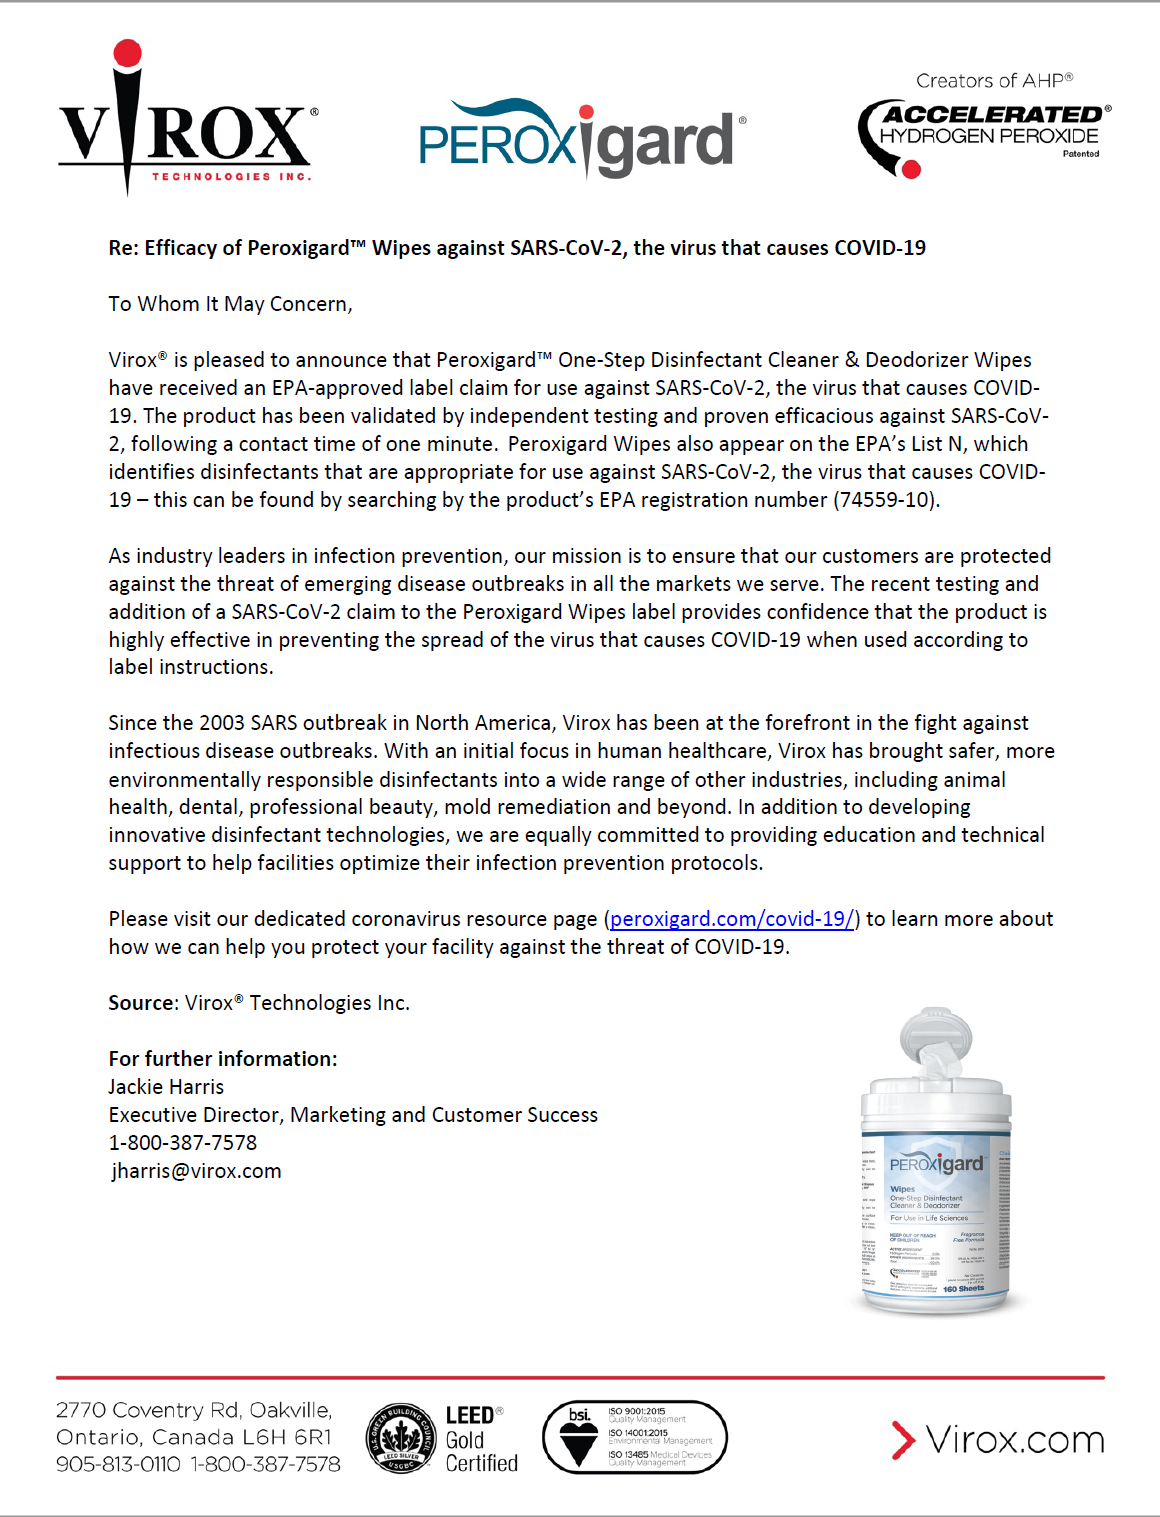 Peroxigard Wipes Efficacy Letter